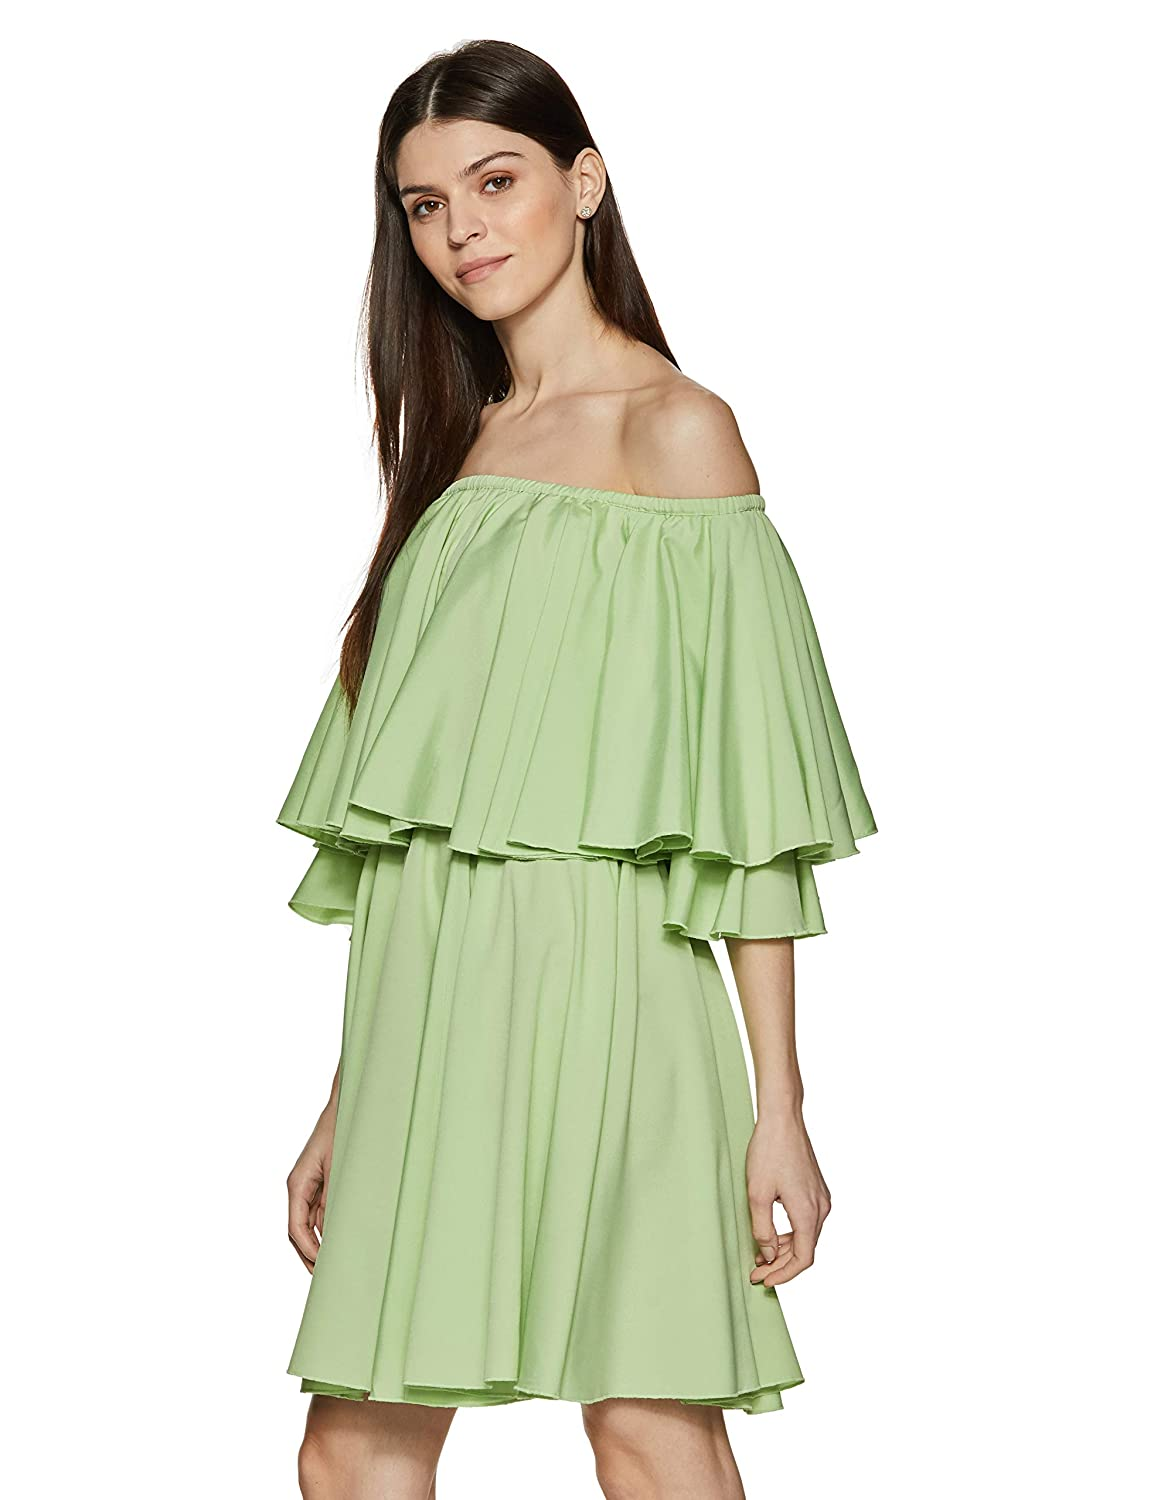 Stalk Buy Love Women s Lime Diana Off Shoulder Skater Dress  (In1825Mtodregrn-143 Green S)  Amazon.in  Clothing   Accessories 330c592c21